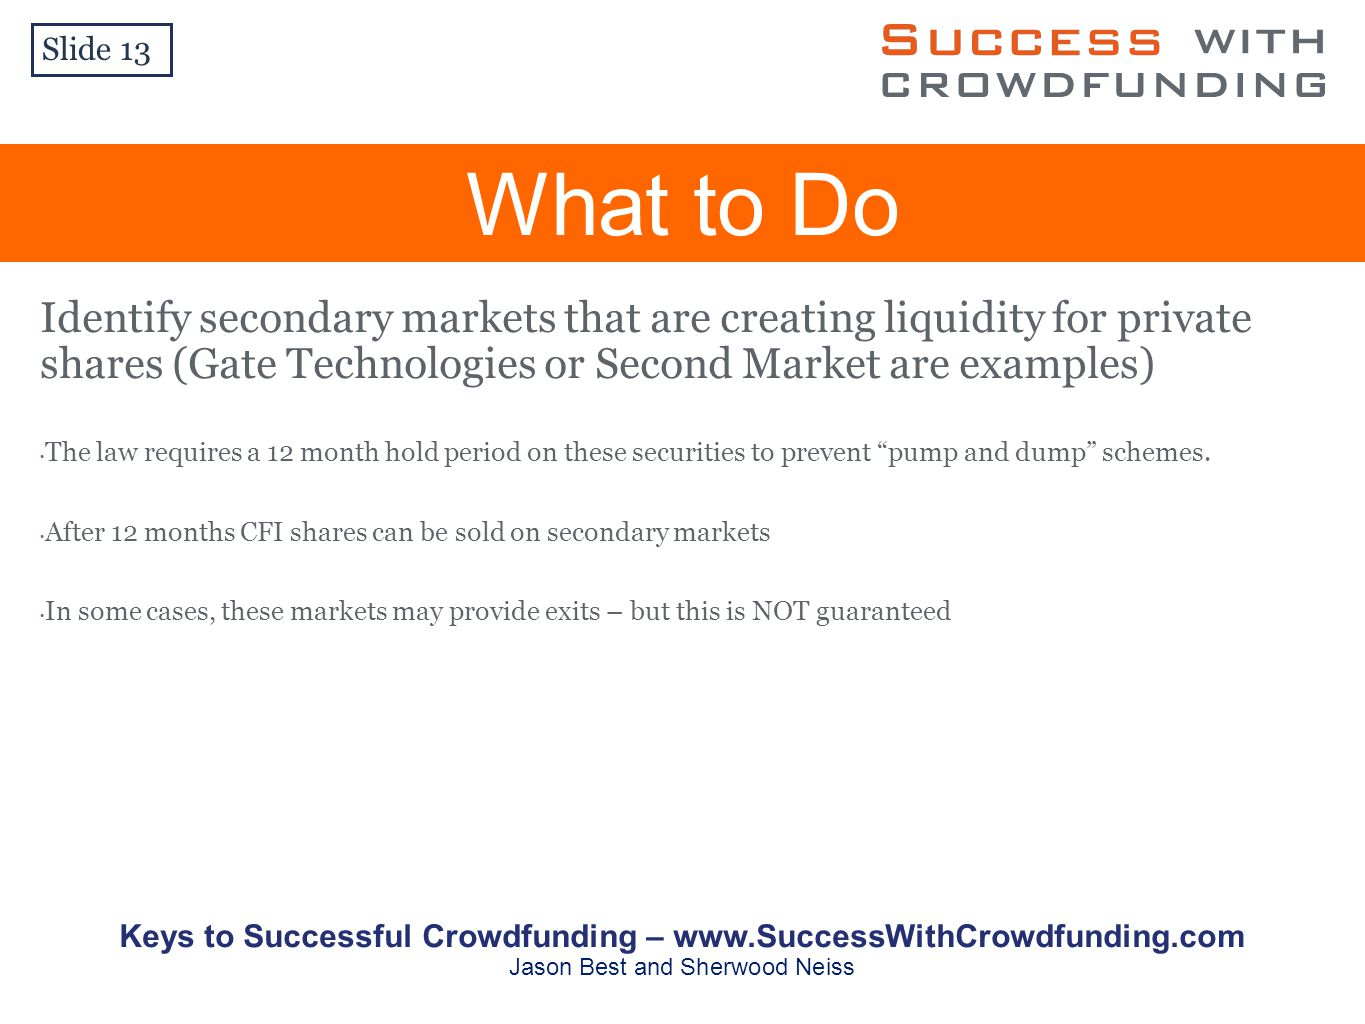 Identify secondary markets that are creating liquidity for private shares (Gate Technologies or Second Market are examples) The law requires a 12 mont